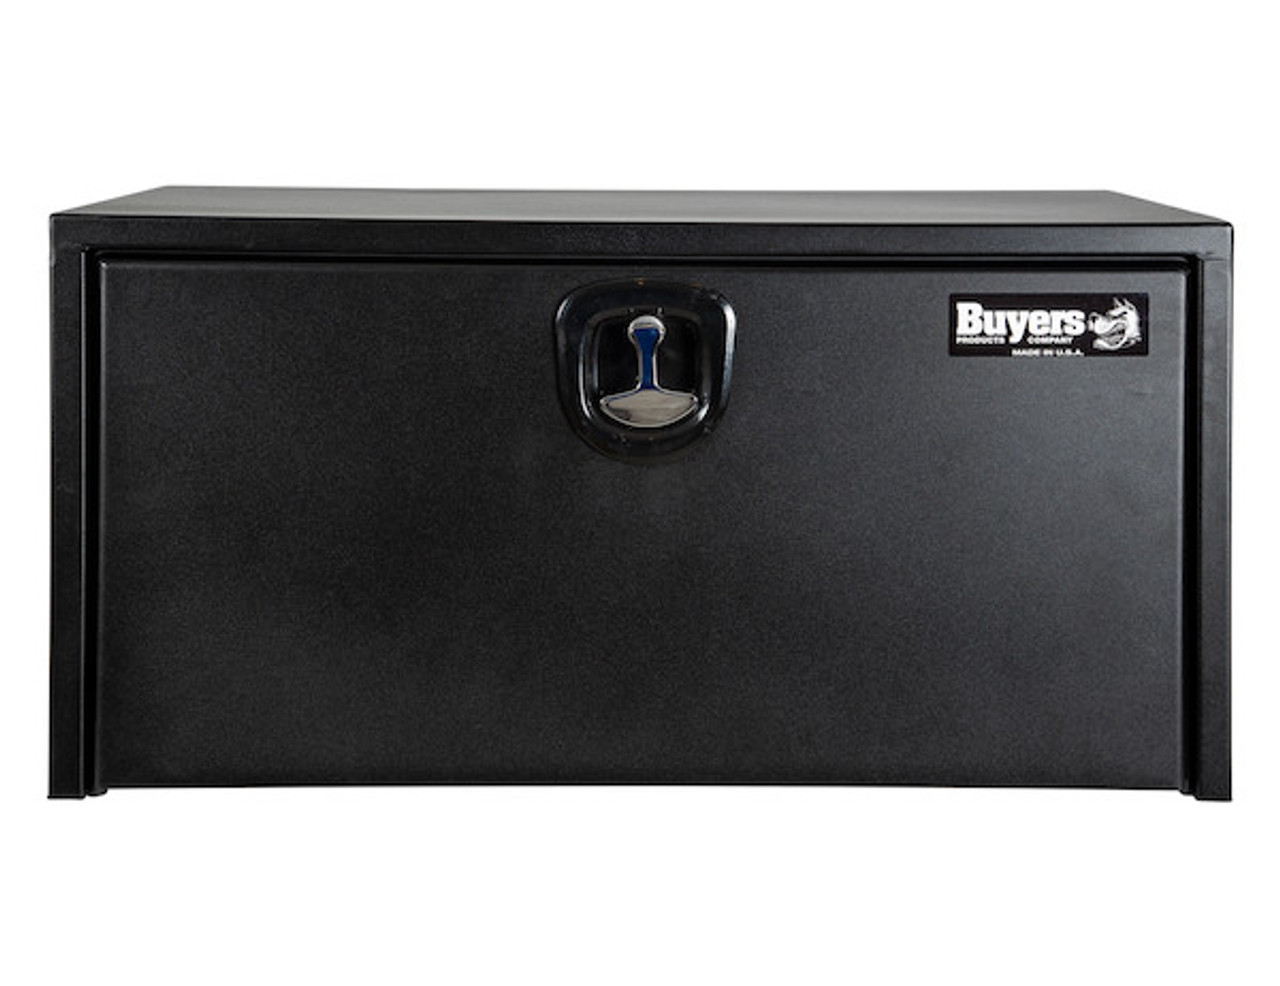 """1734500 BUYERS PRODUCTS TEXTURED MATTE BLACK STEEL UNDERBODY TRUCK TOOLBOX WITH 3-POINT LATCH 24""""Hx24""""Dx24""""W  Picture # 2"""